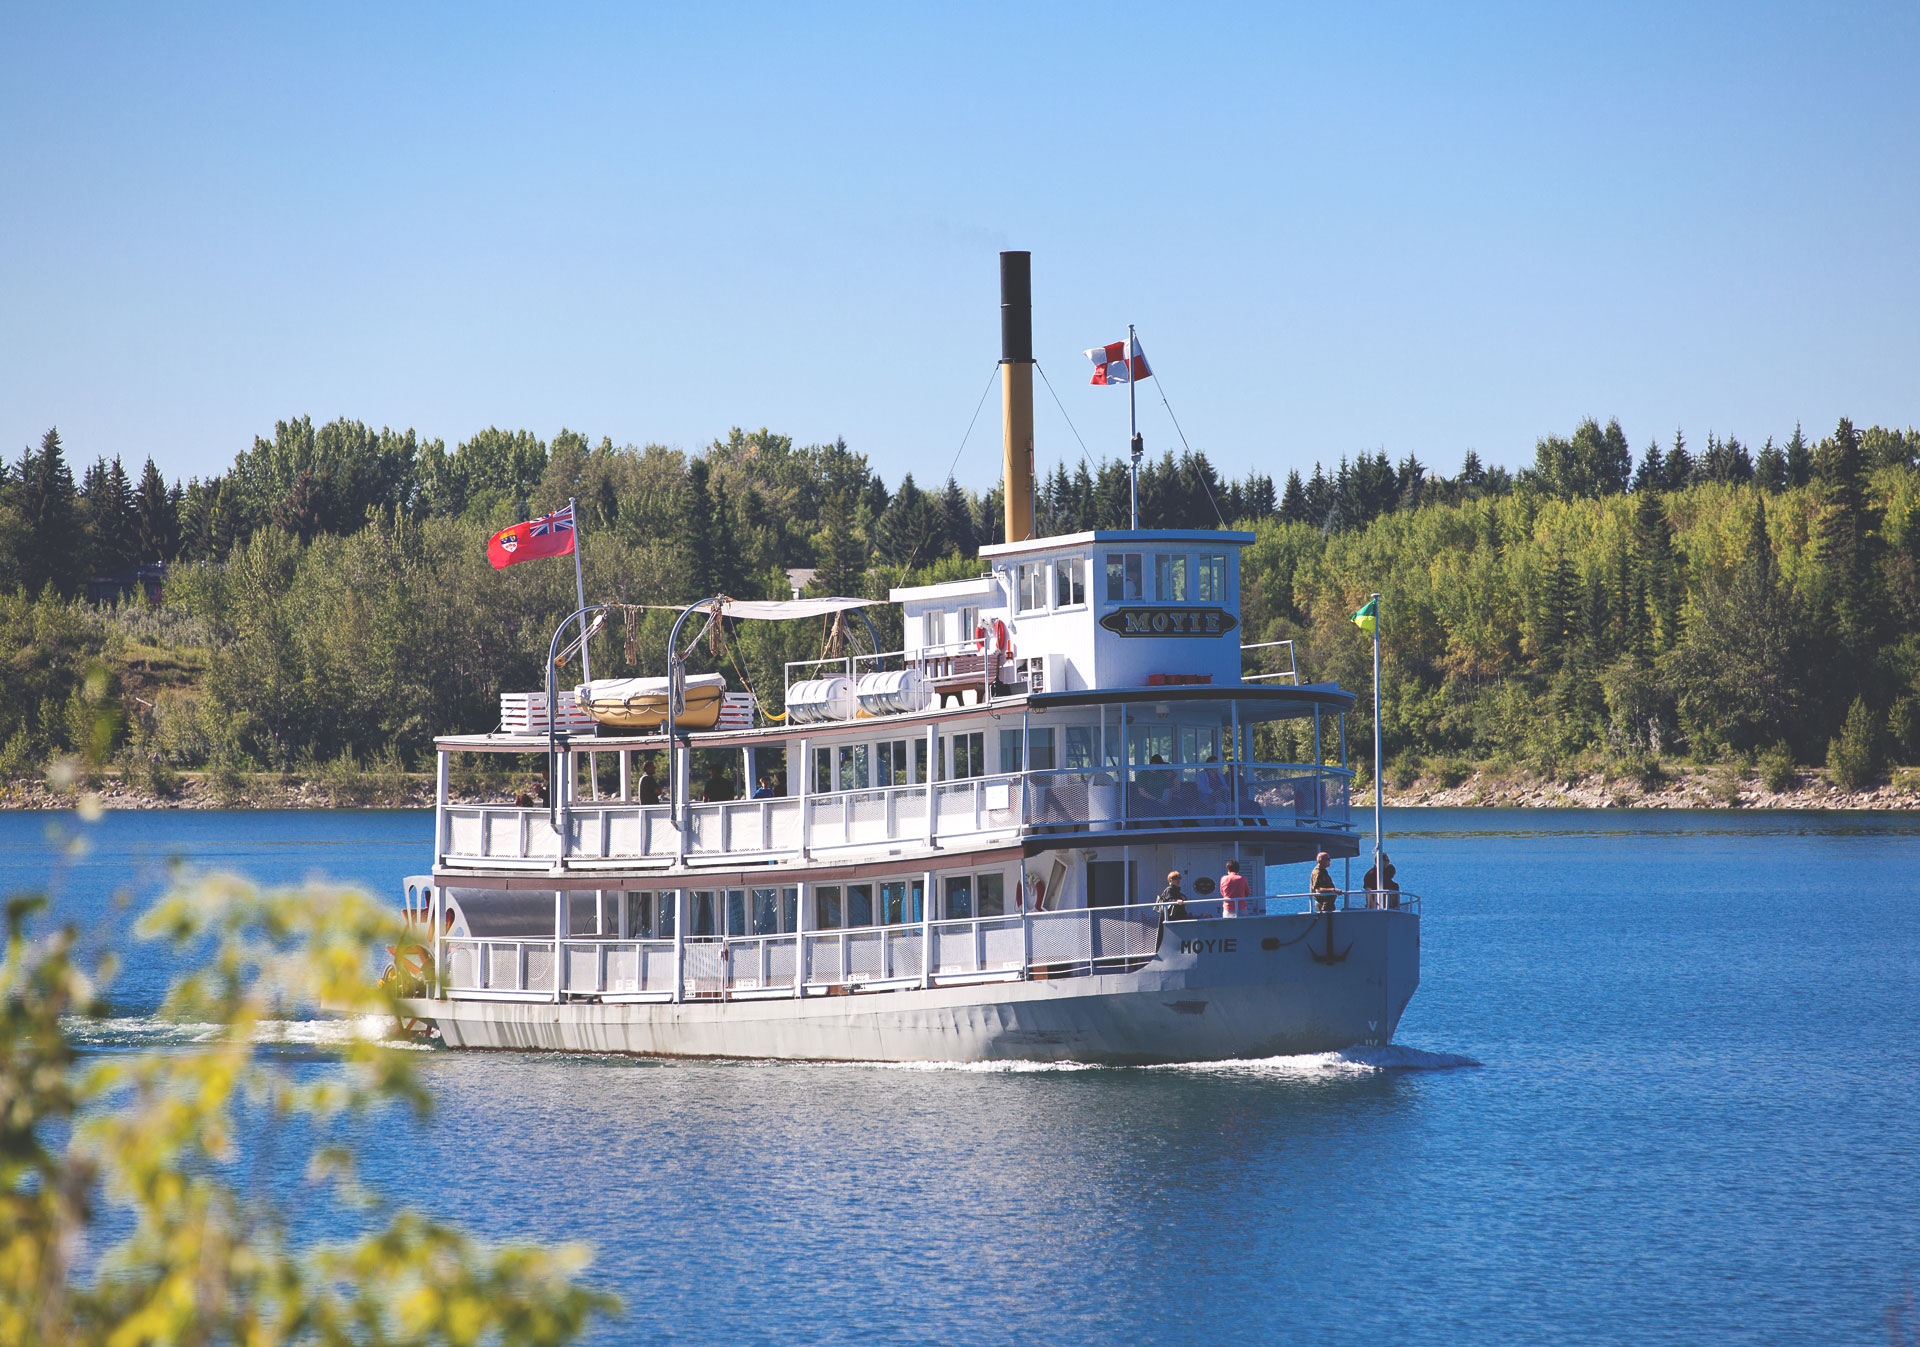 Celebrate Opening Weekend at Heritage Park on the S.S. Moyie.